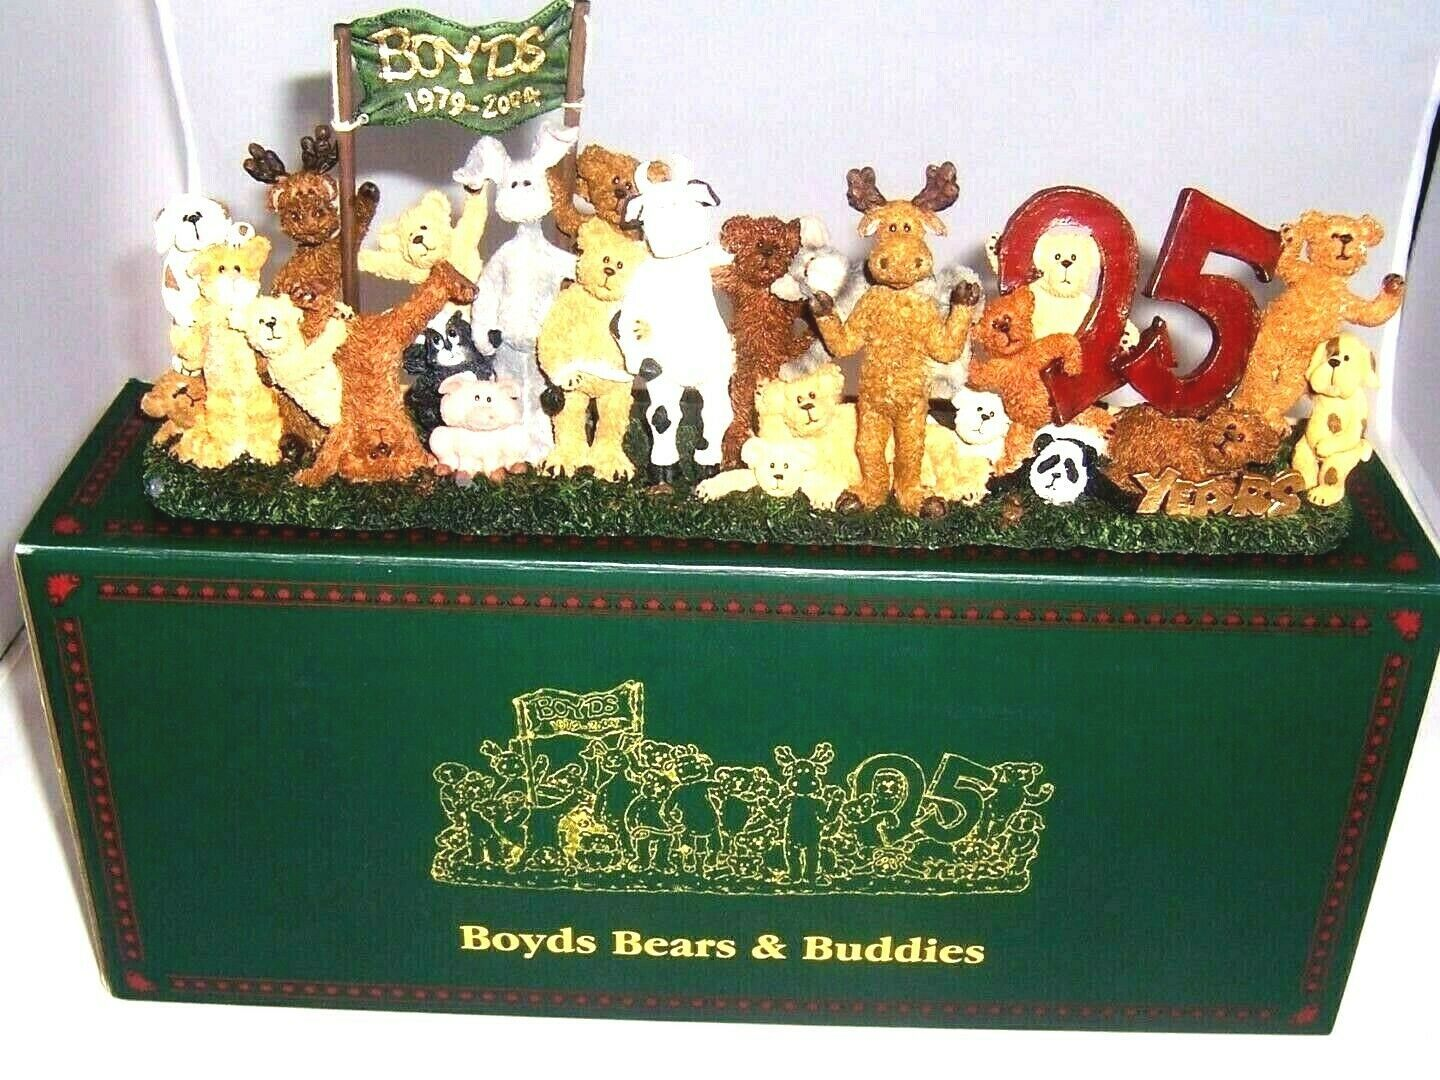 "Boyds Bearstone ""Boyds Bears & Buddies..25 Years & Counting"" #22844PAW-  2004"